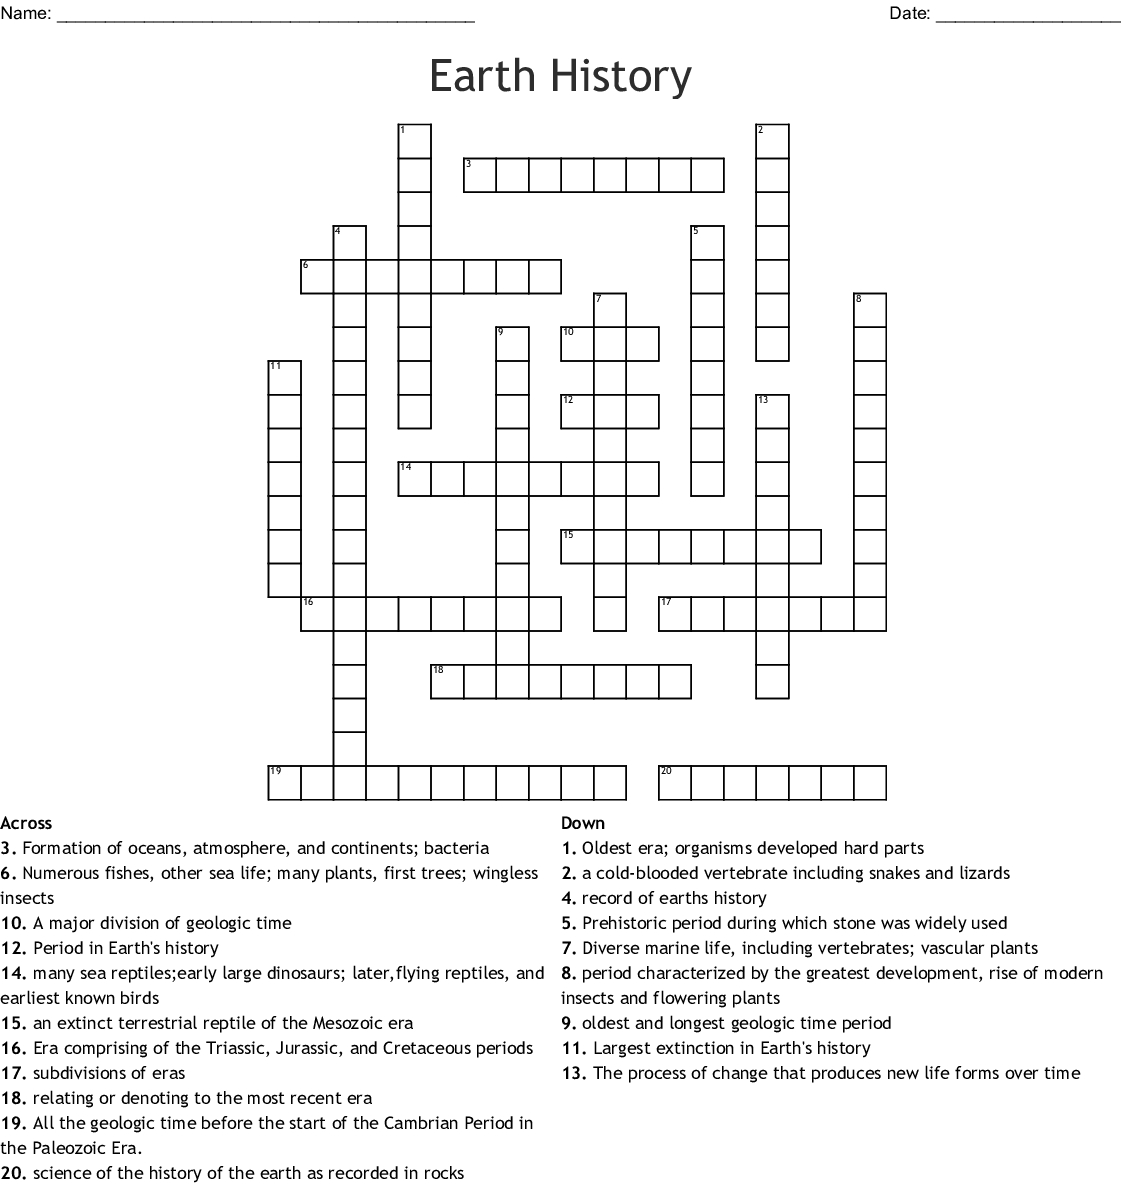 Earth History Crossword - Wordmint - Printable History Crossword Puzzle